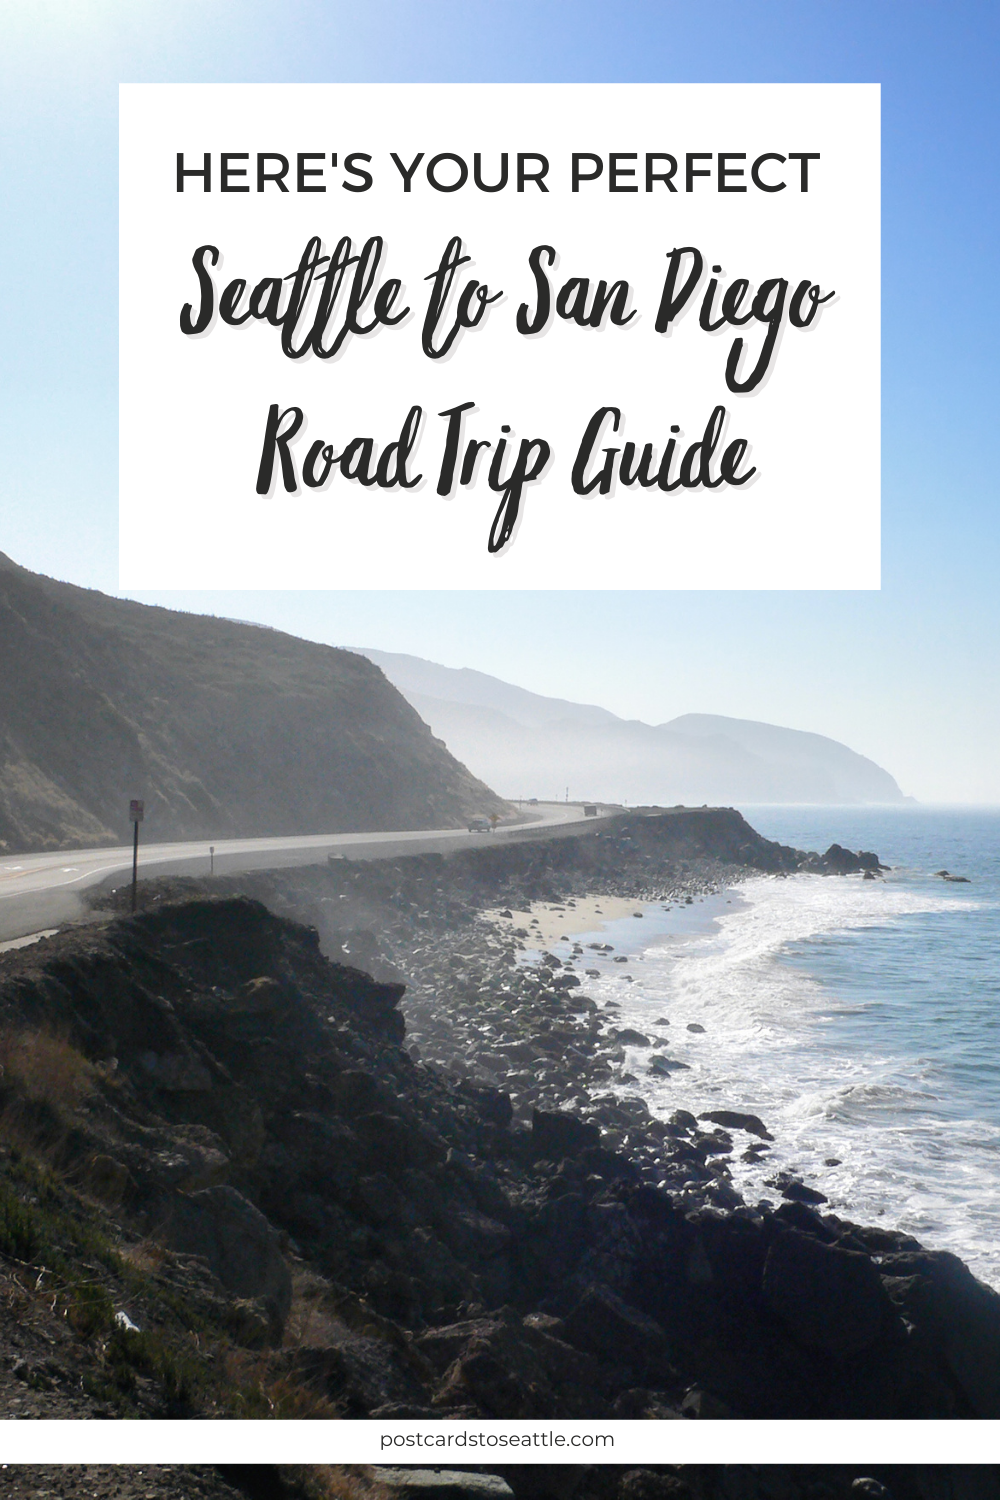 How to Plan the Ultimate Seattle to San Diego Road Trip